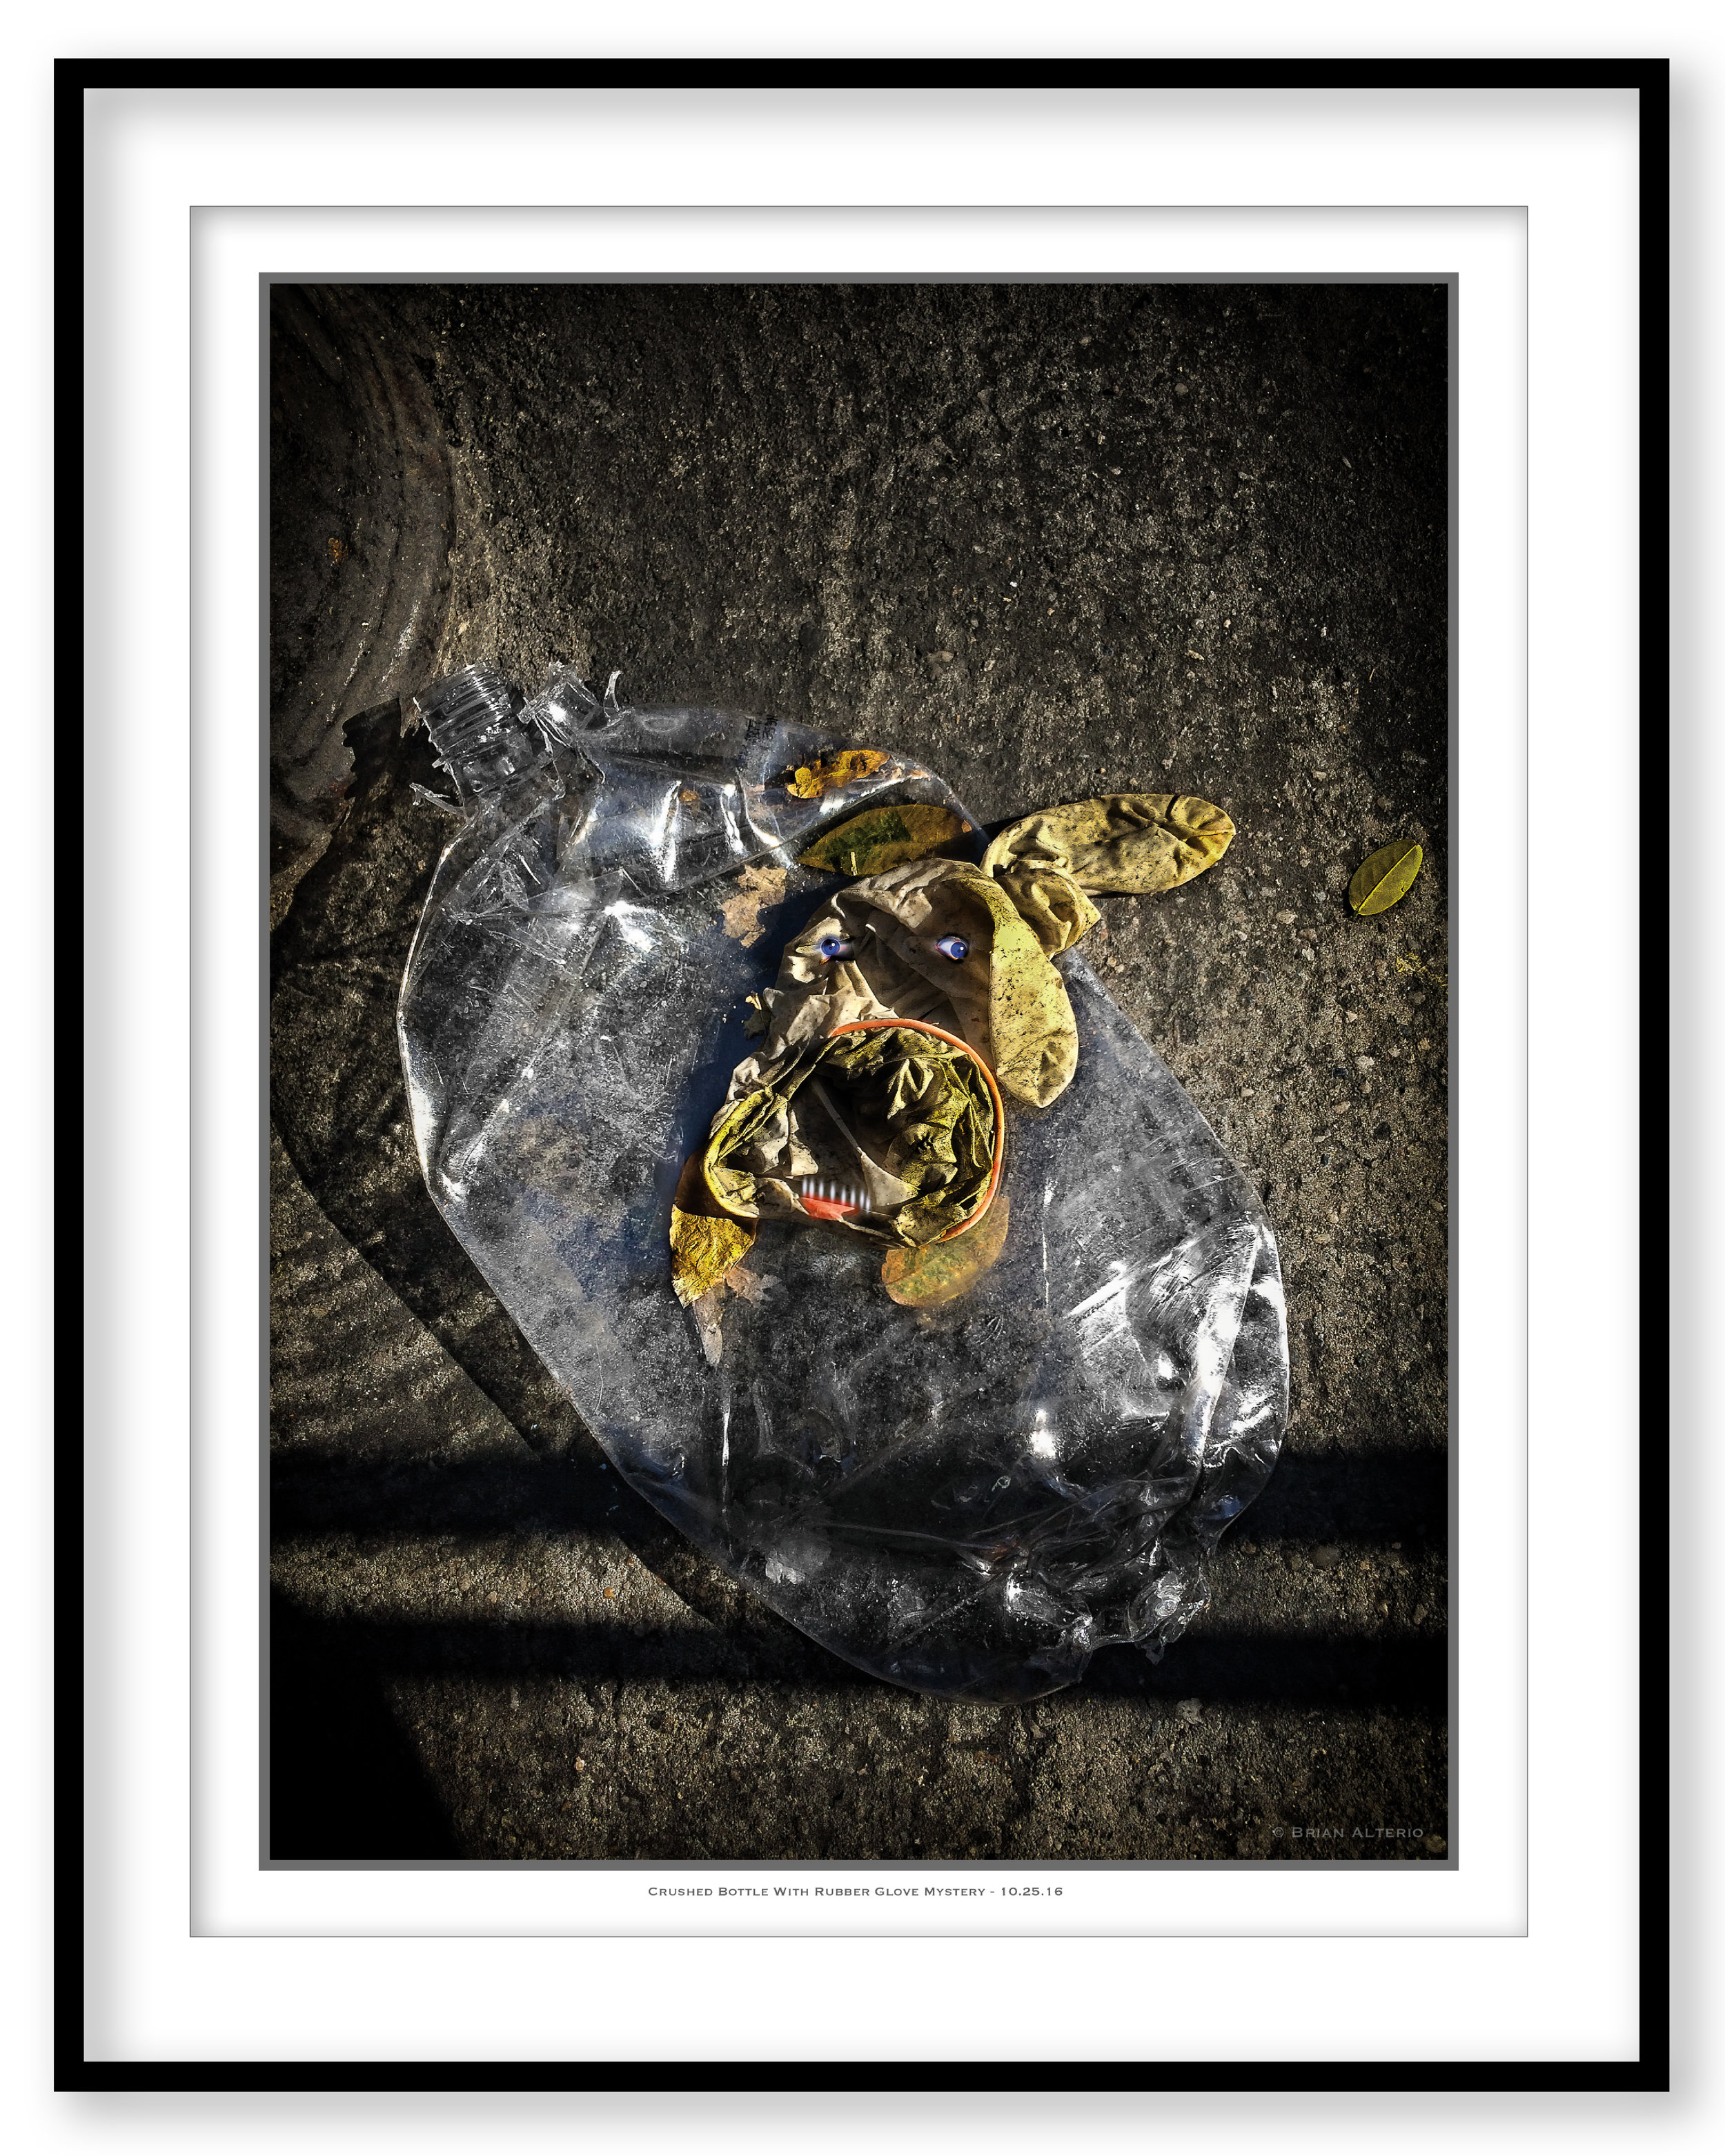 Crushed Bottle With Rubber Glove Mystery - 10.25.16 - Framed.jpg